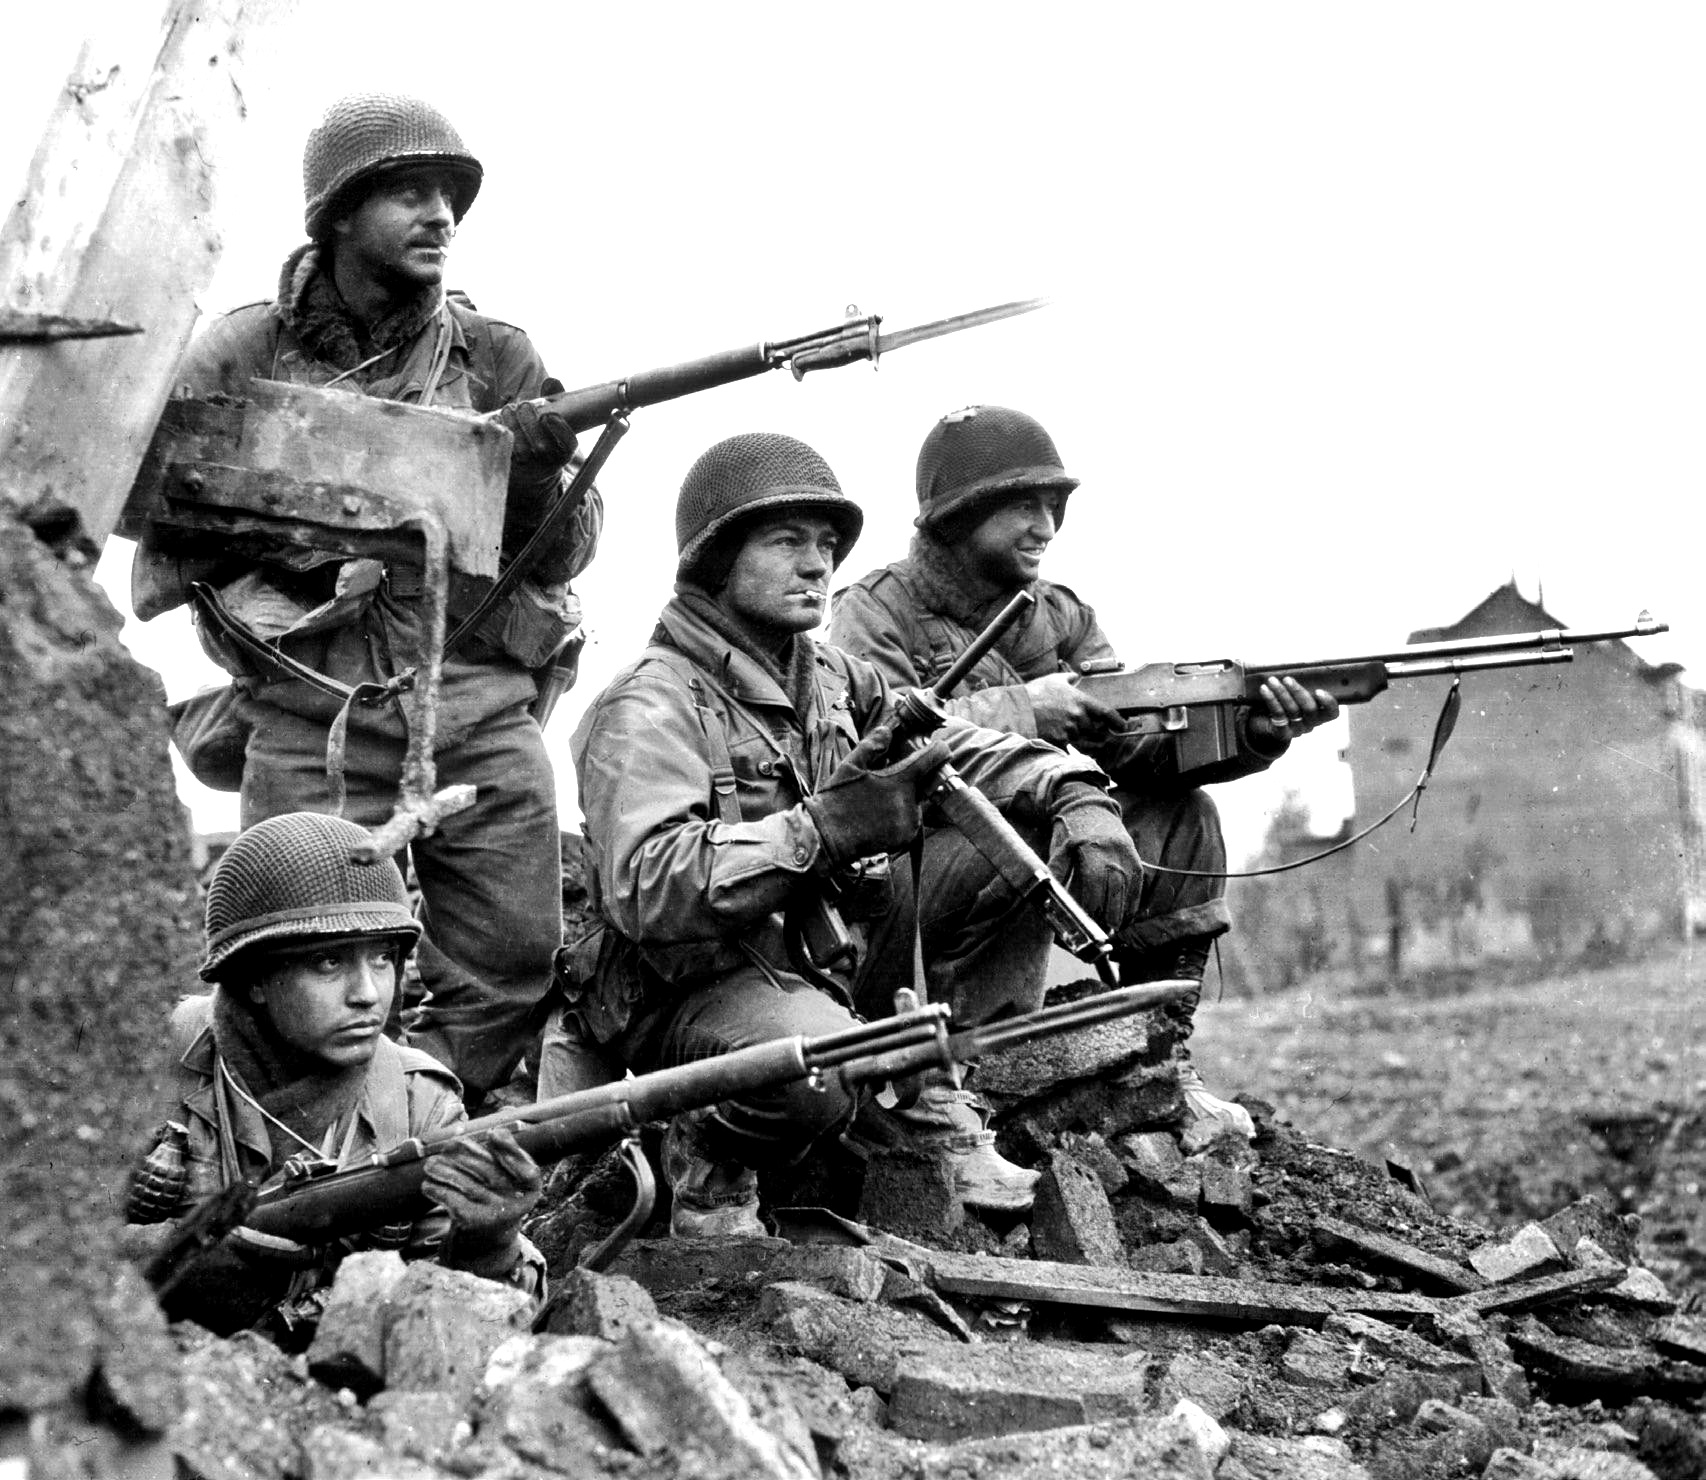 Heavily armed American soldiers during the Battle of The Bulge